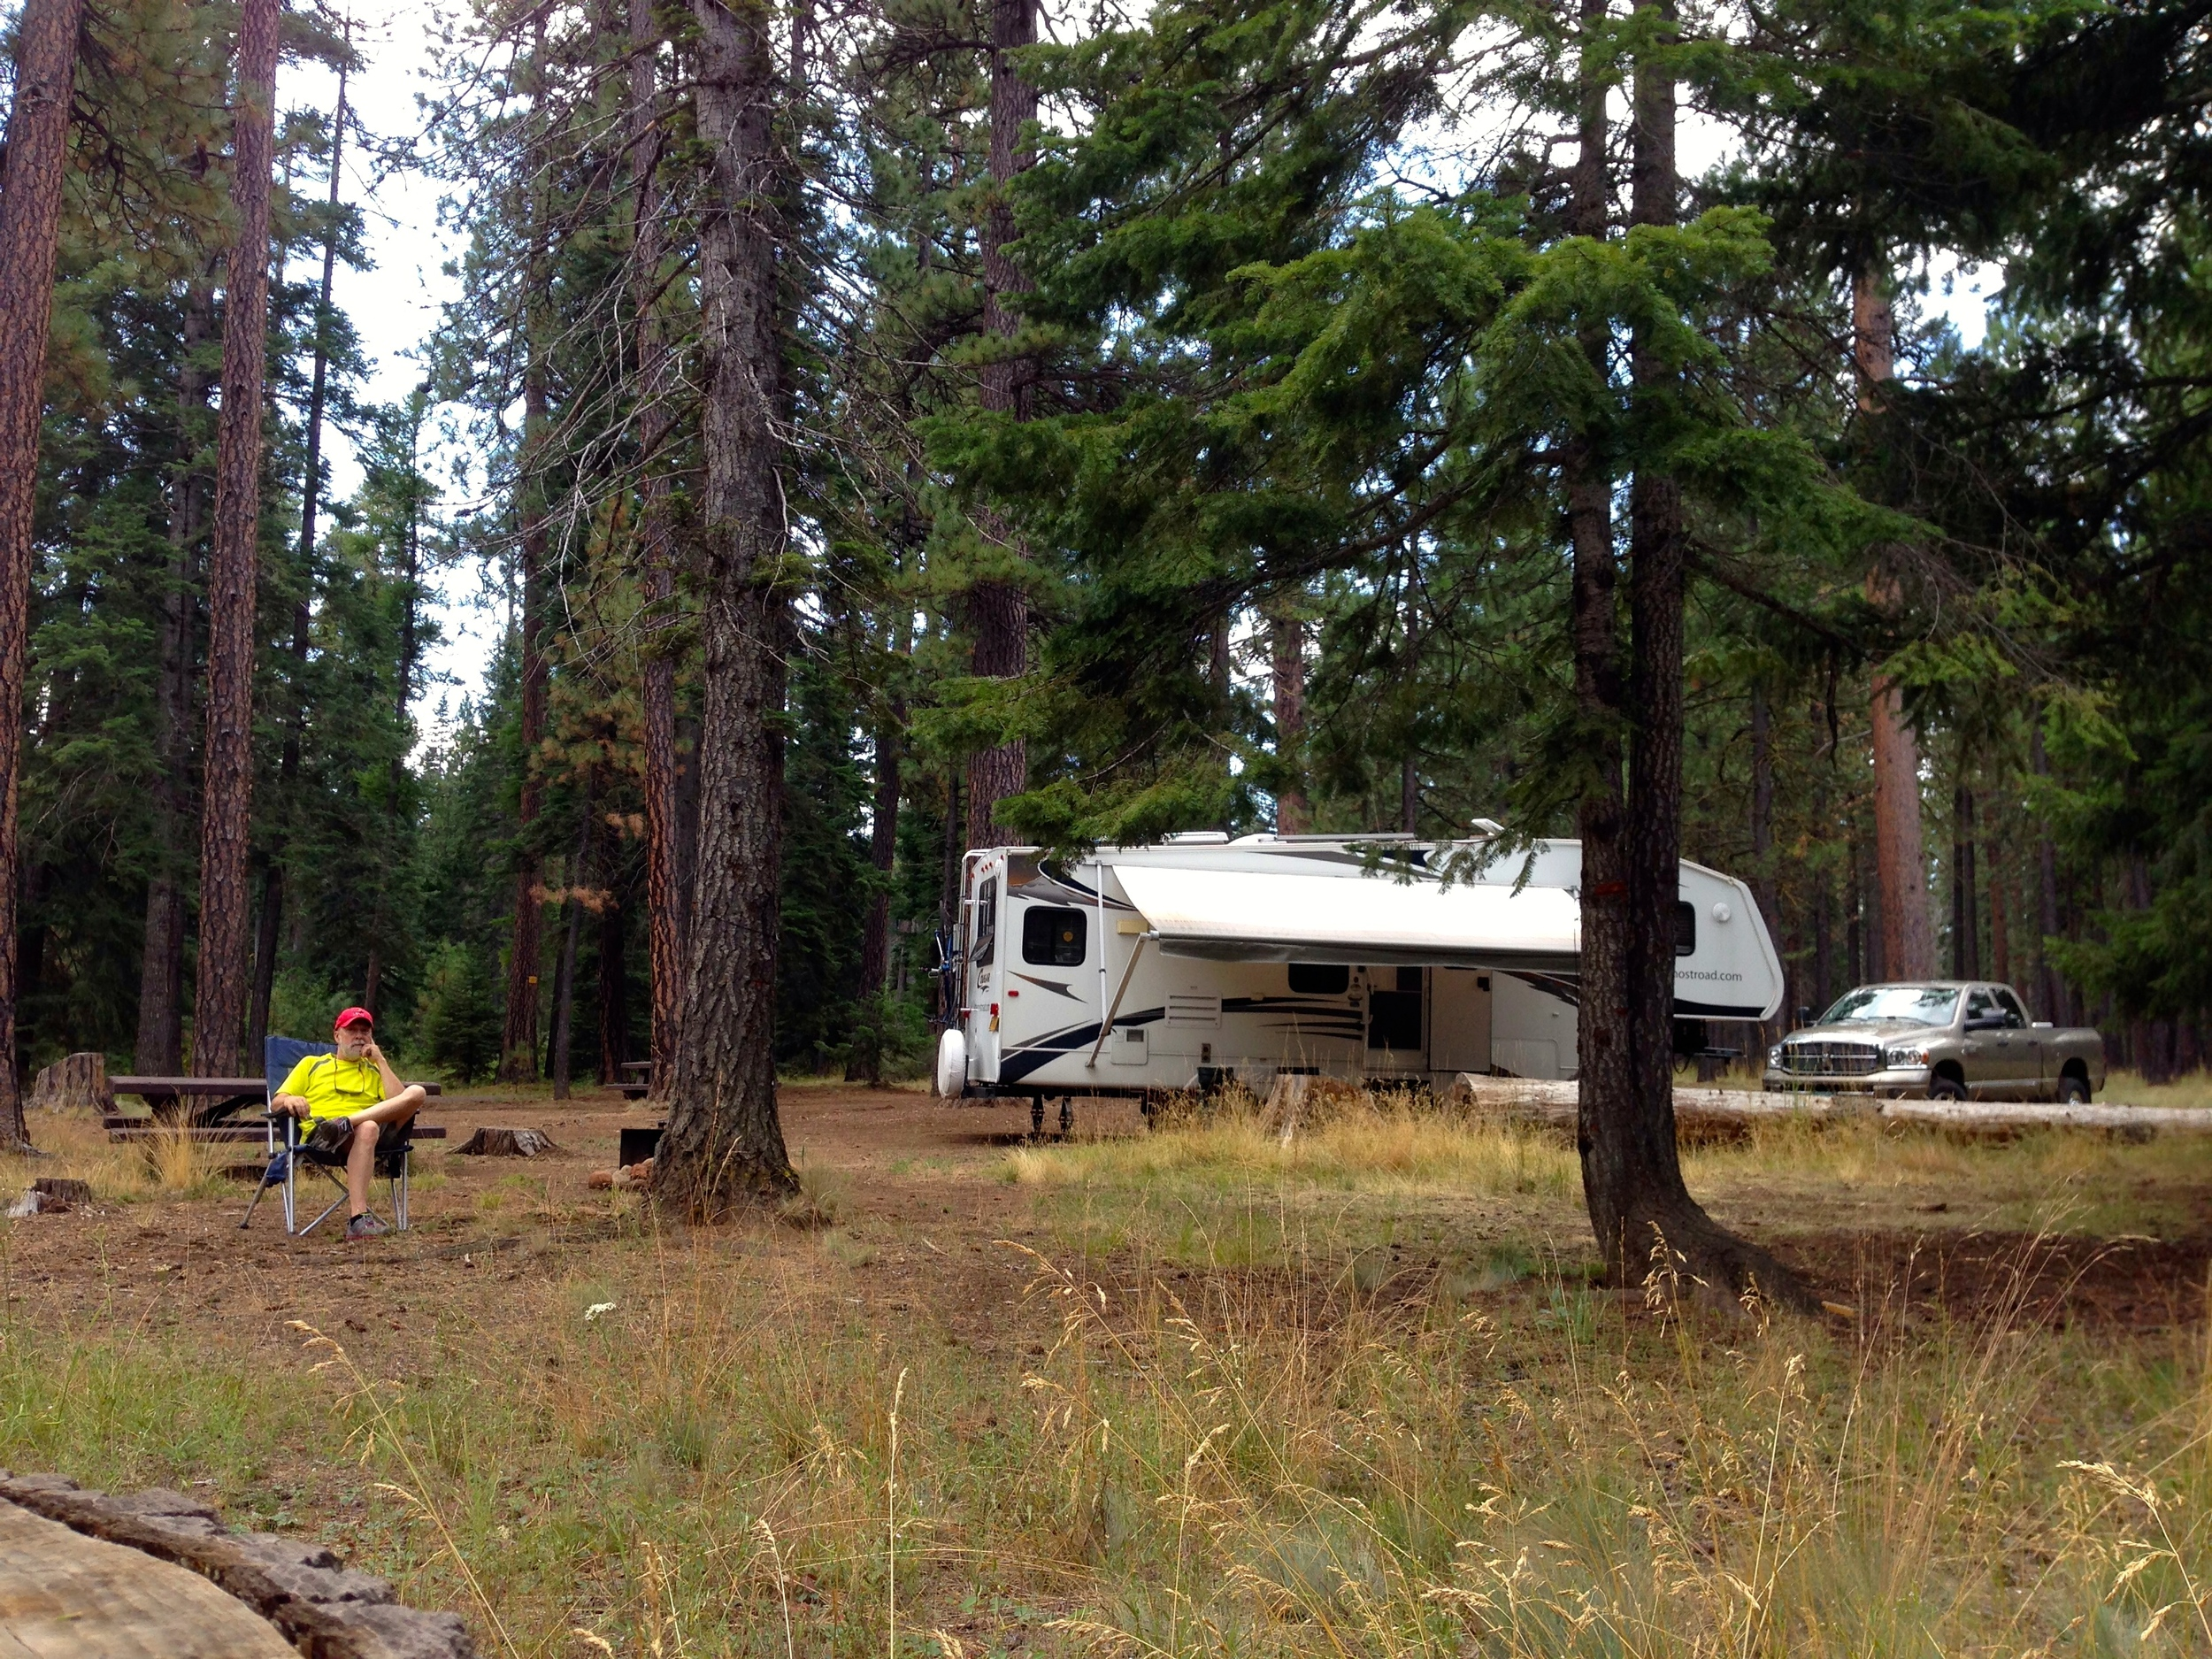 Jack Creek Campground in central Oregon (August 14-18)